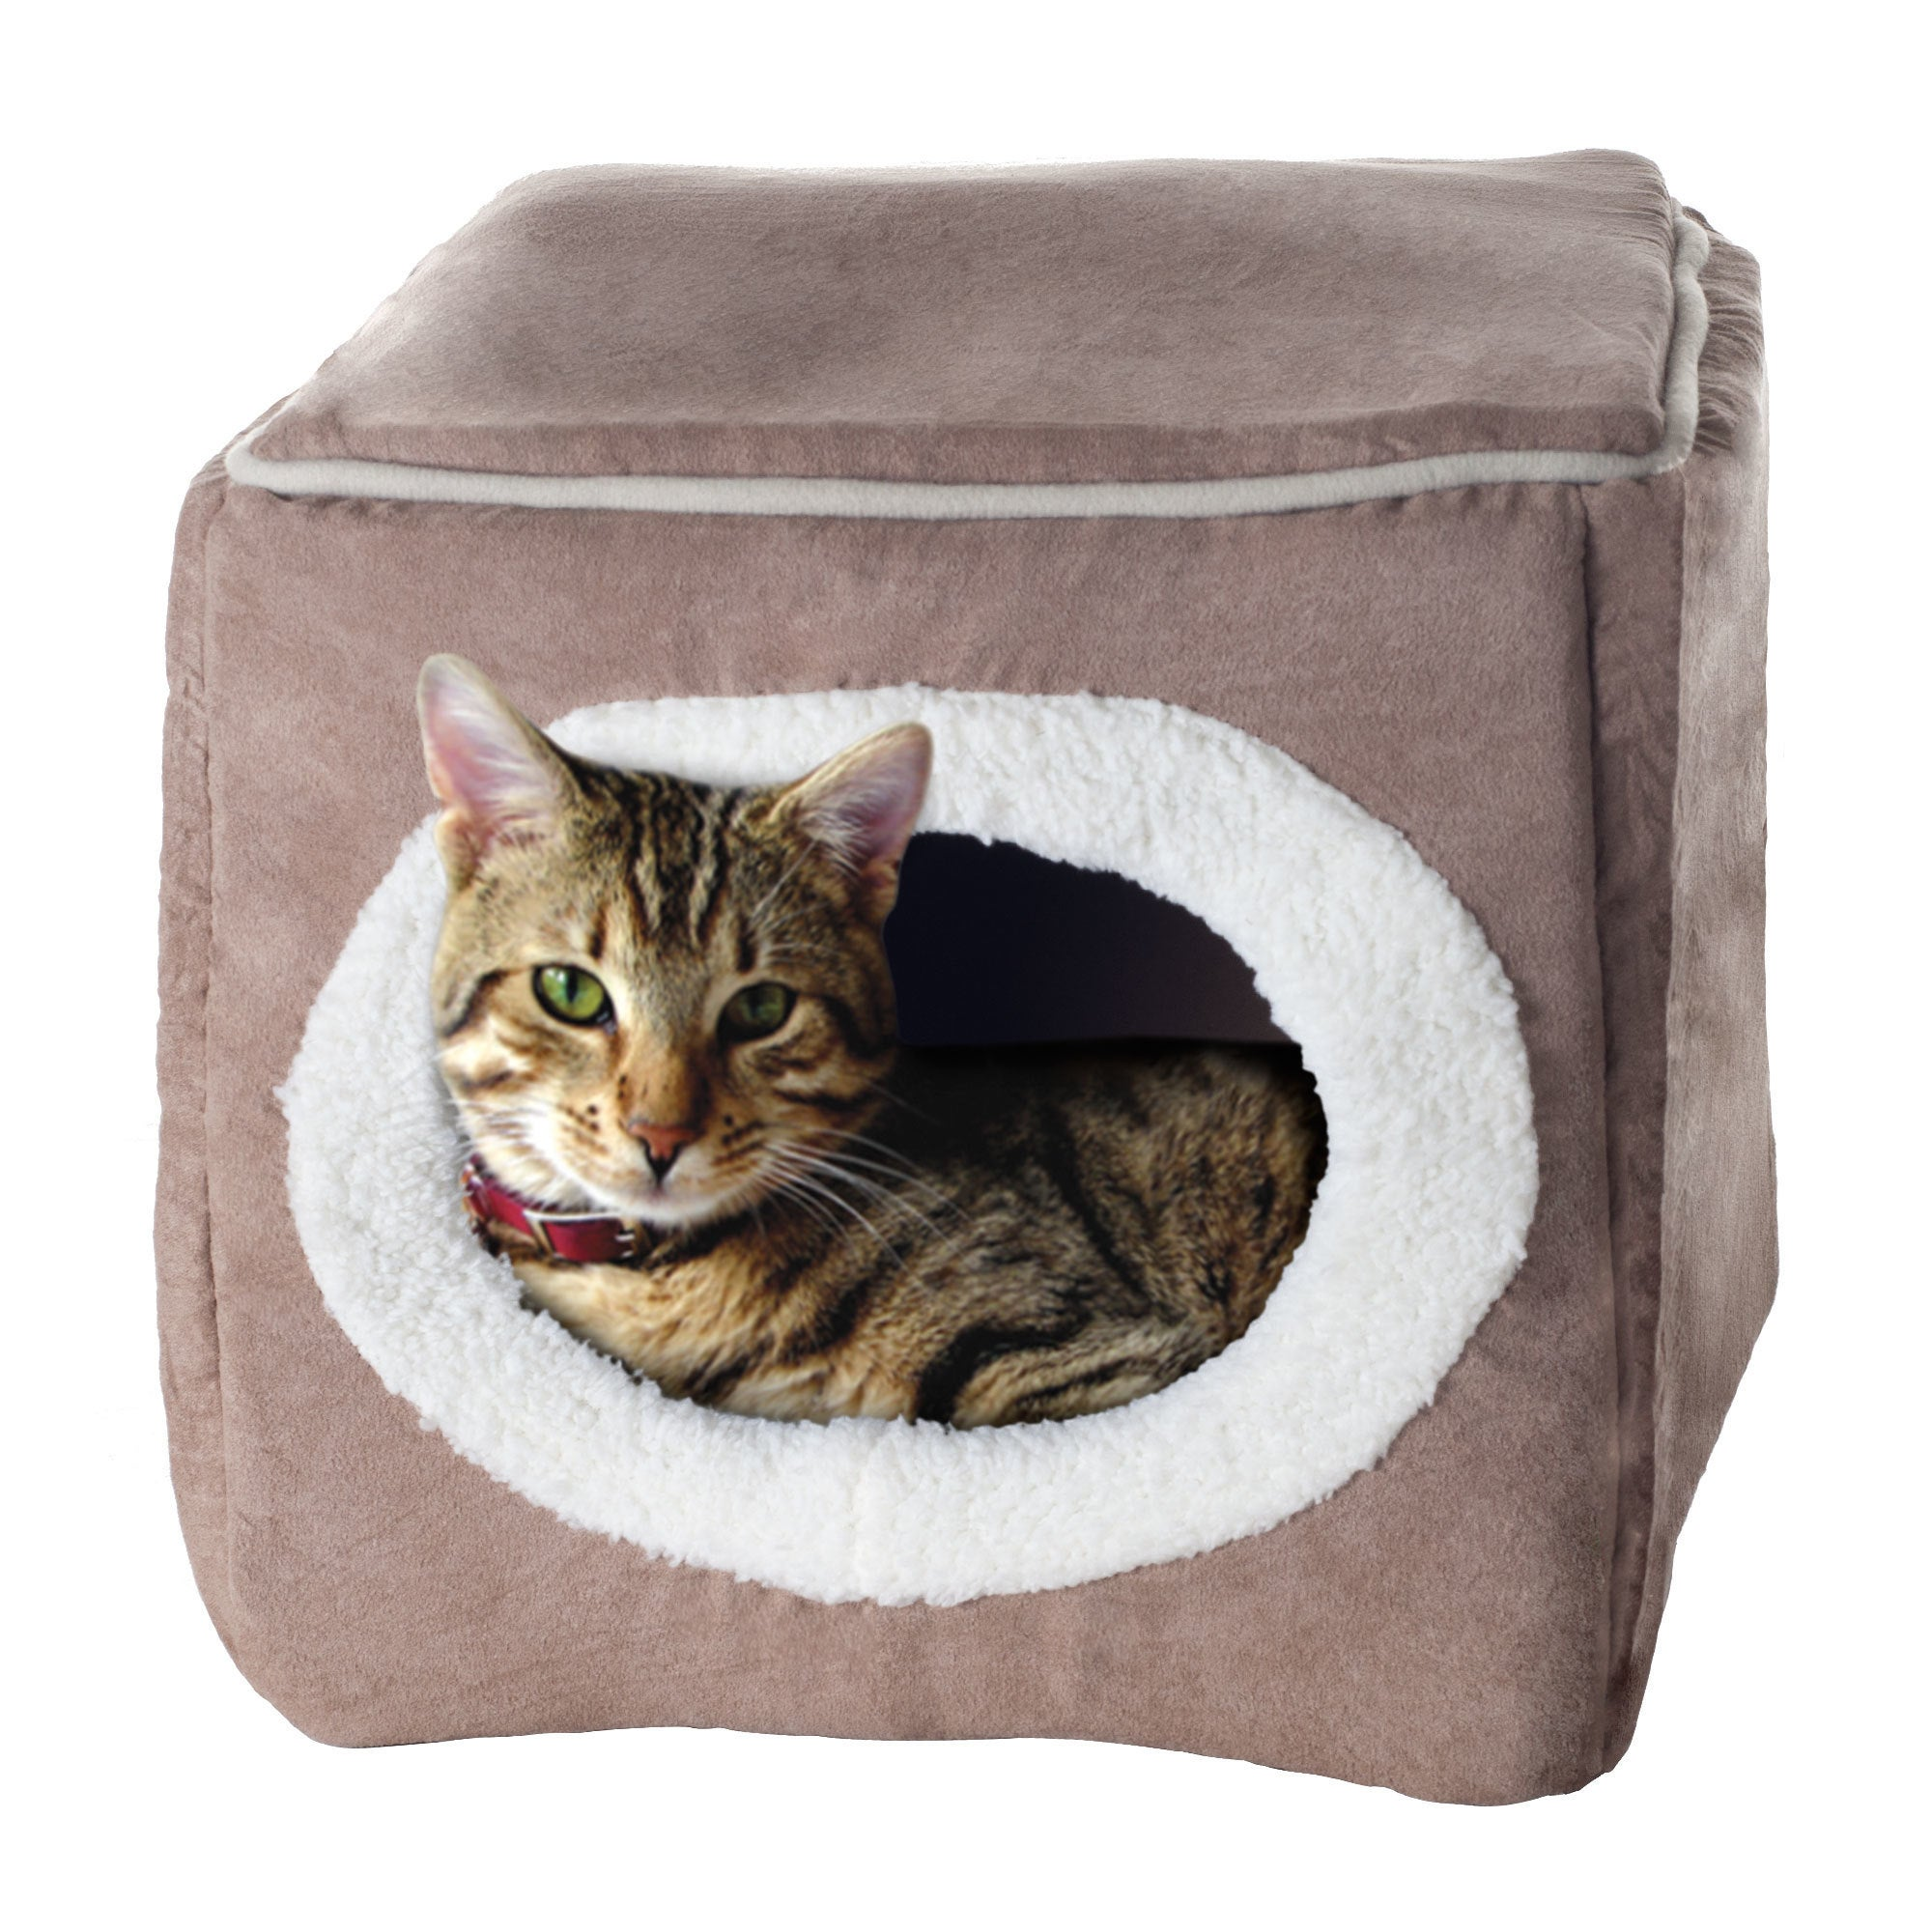 Petmaker Cozy Cave Enclosed Cube Pet Bed (Tan/White Anima...